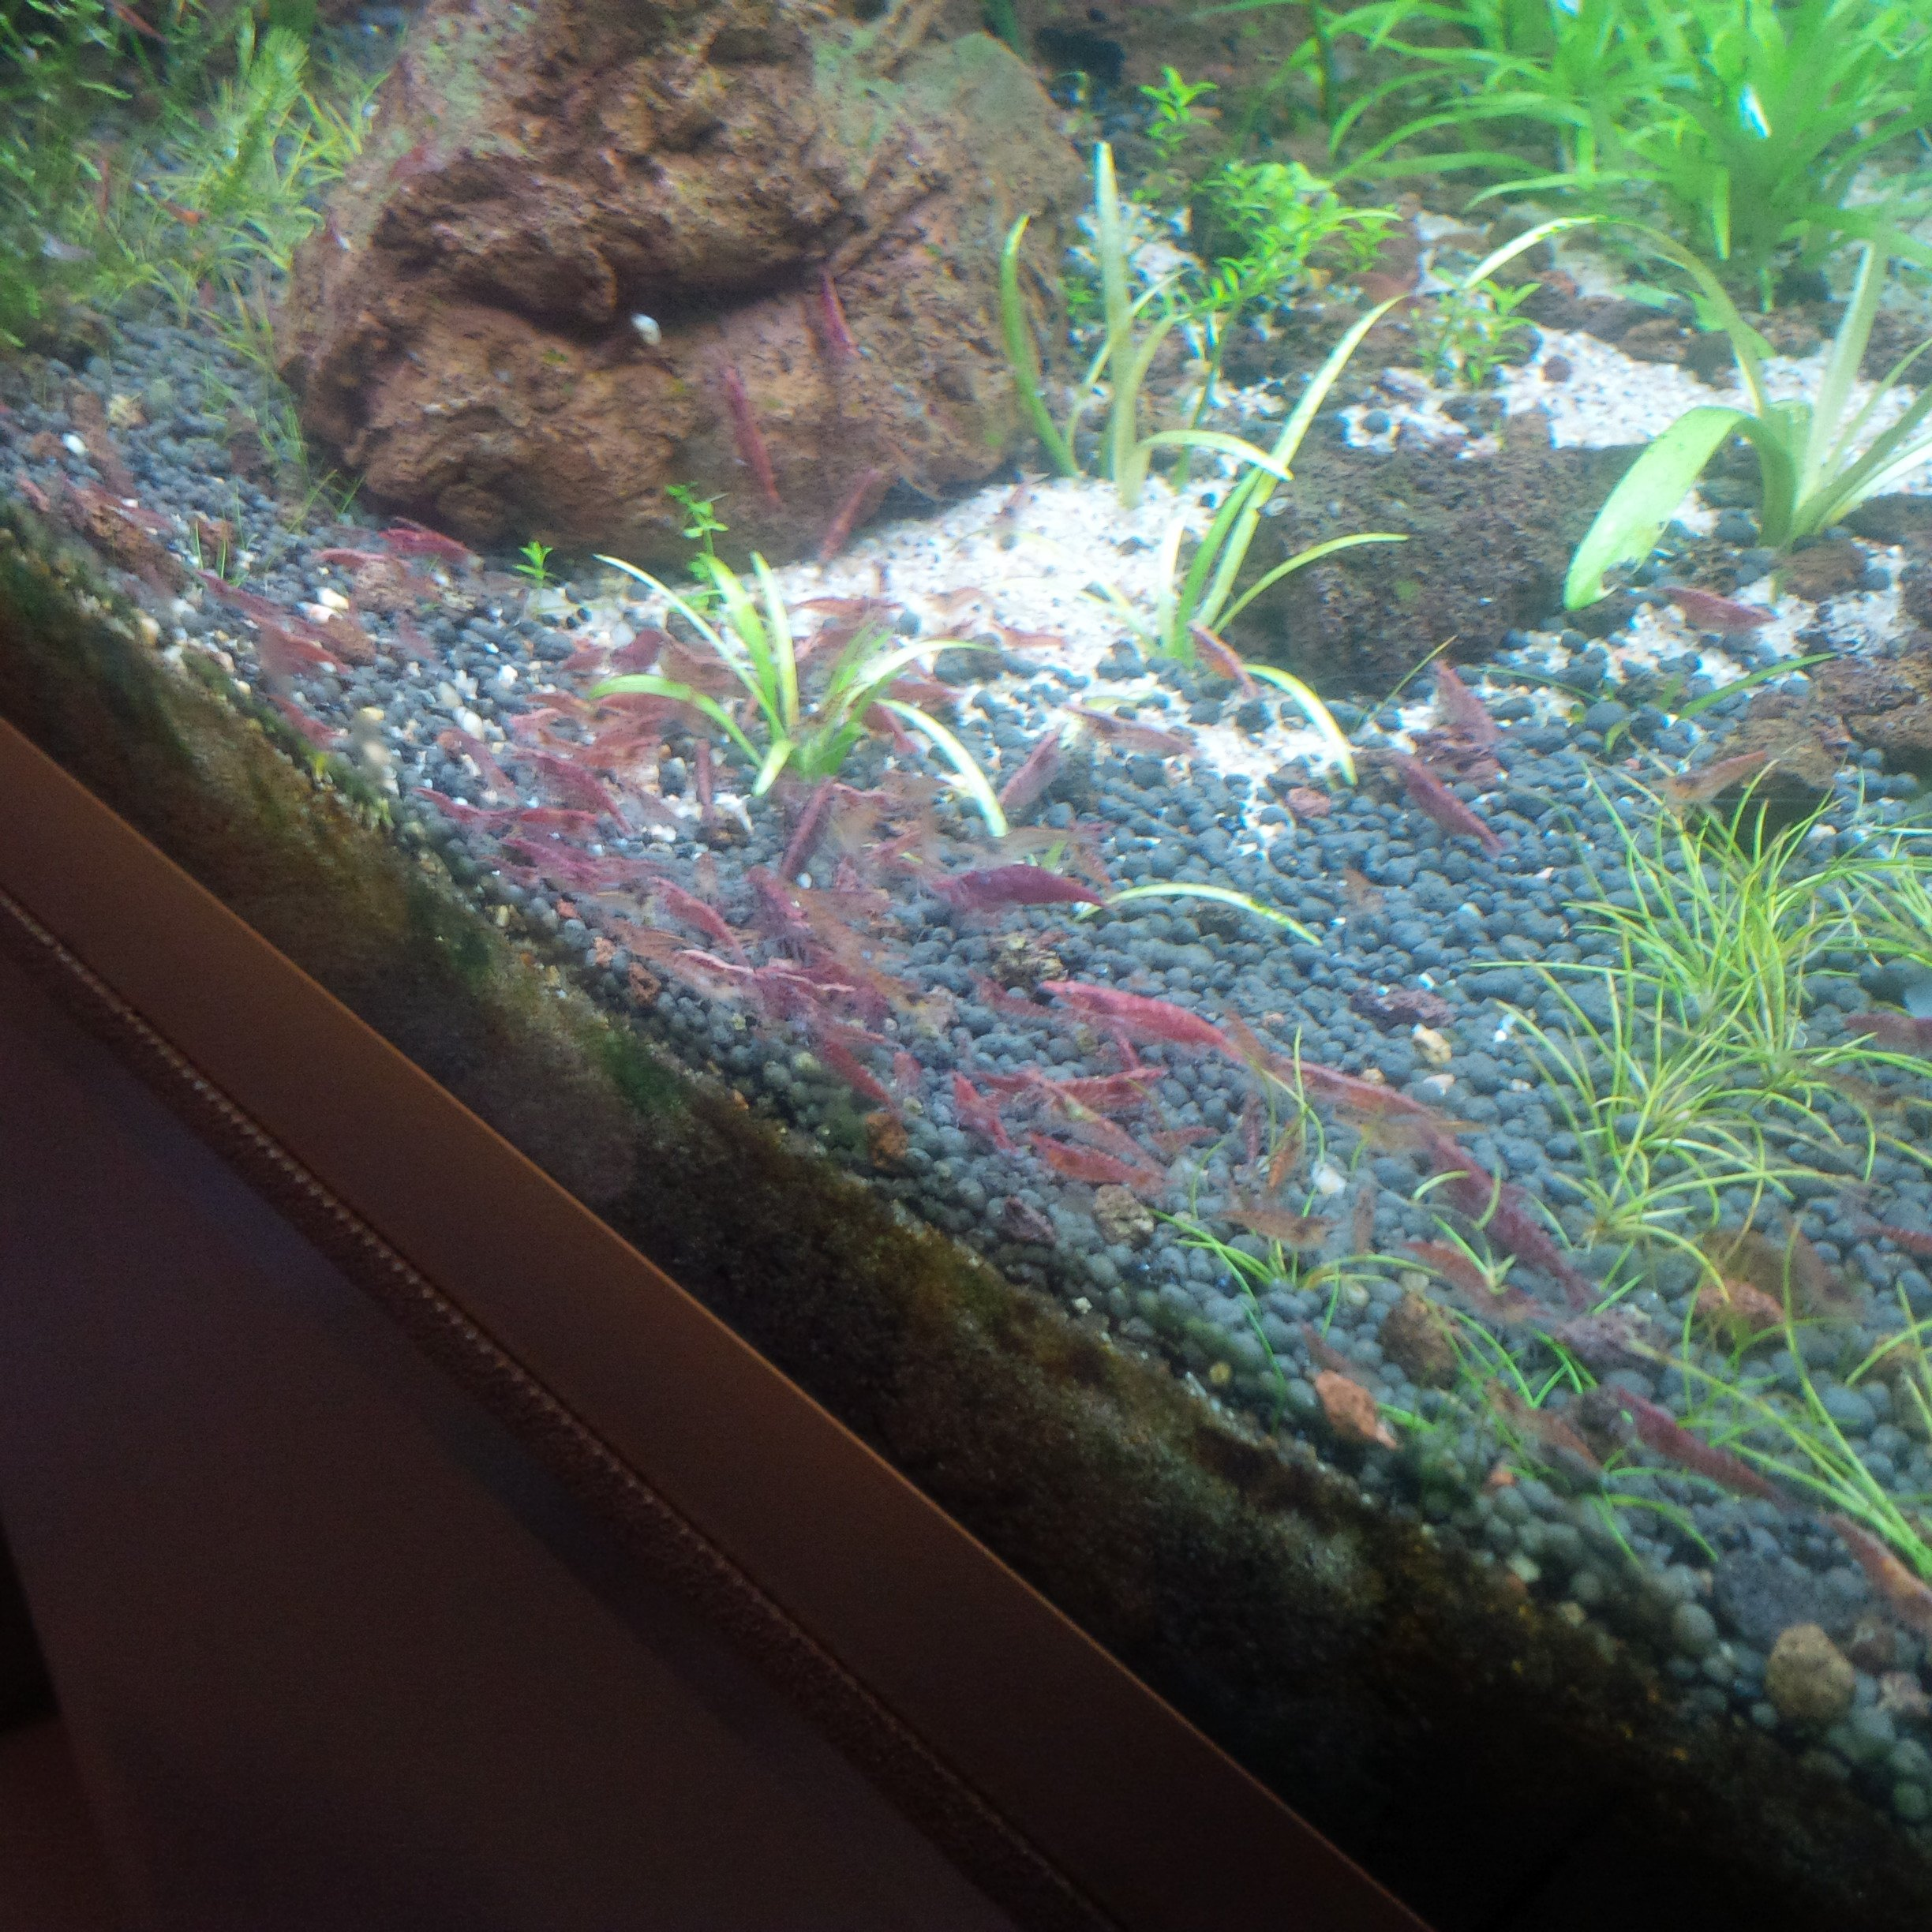 banc énorme de red cherry en aquarium